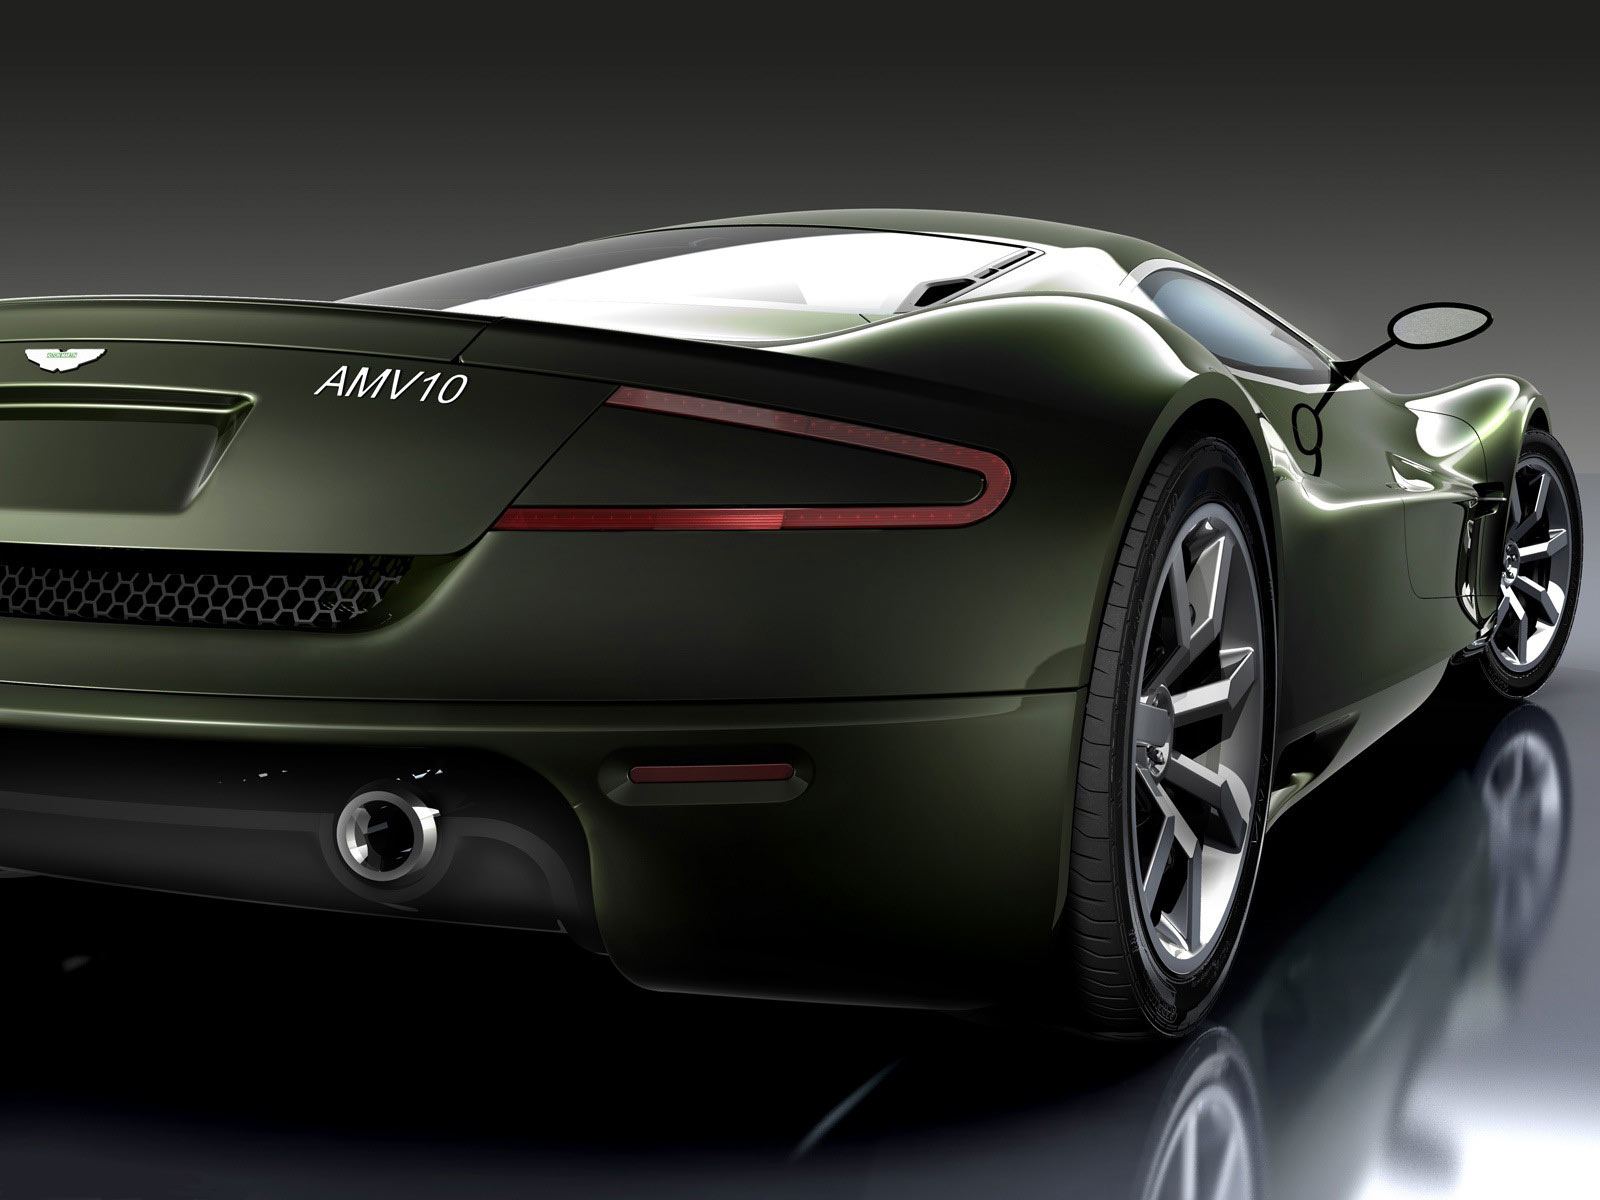 Wallpapers Background: Desktop Wallpapers of Sports Car   Sports Cars ...